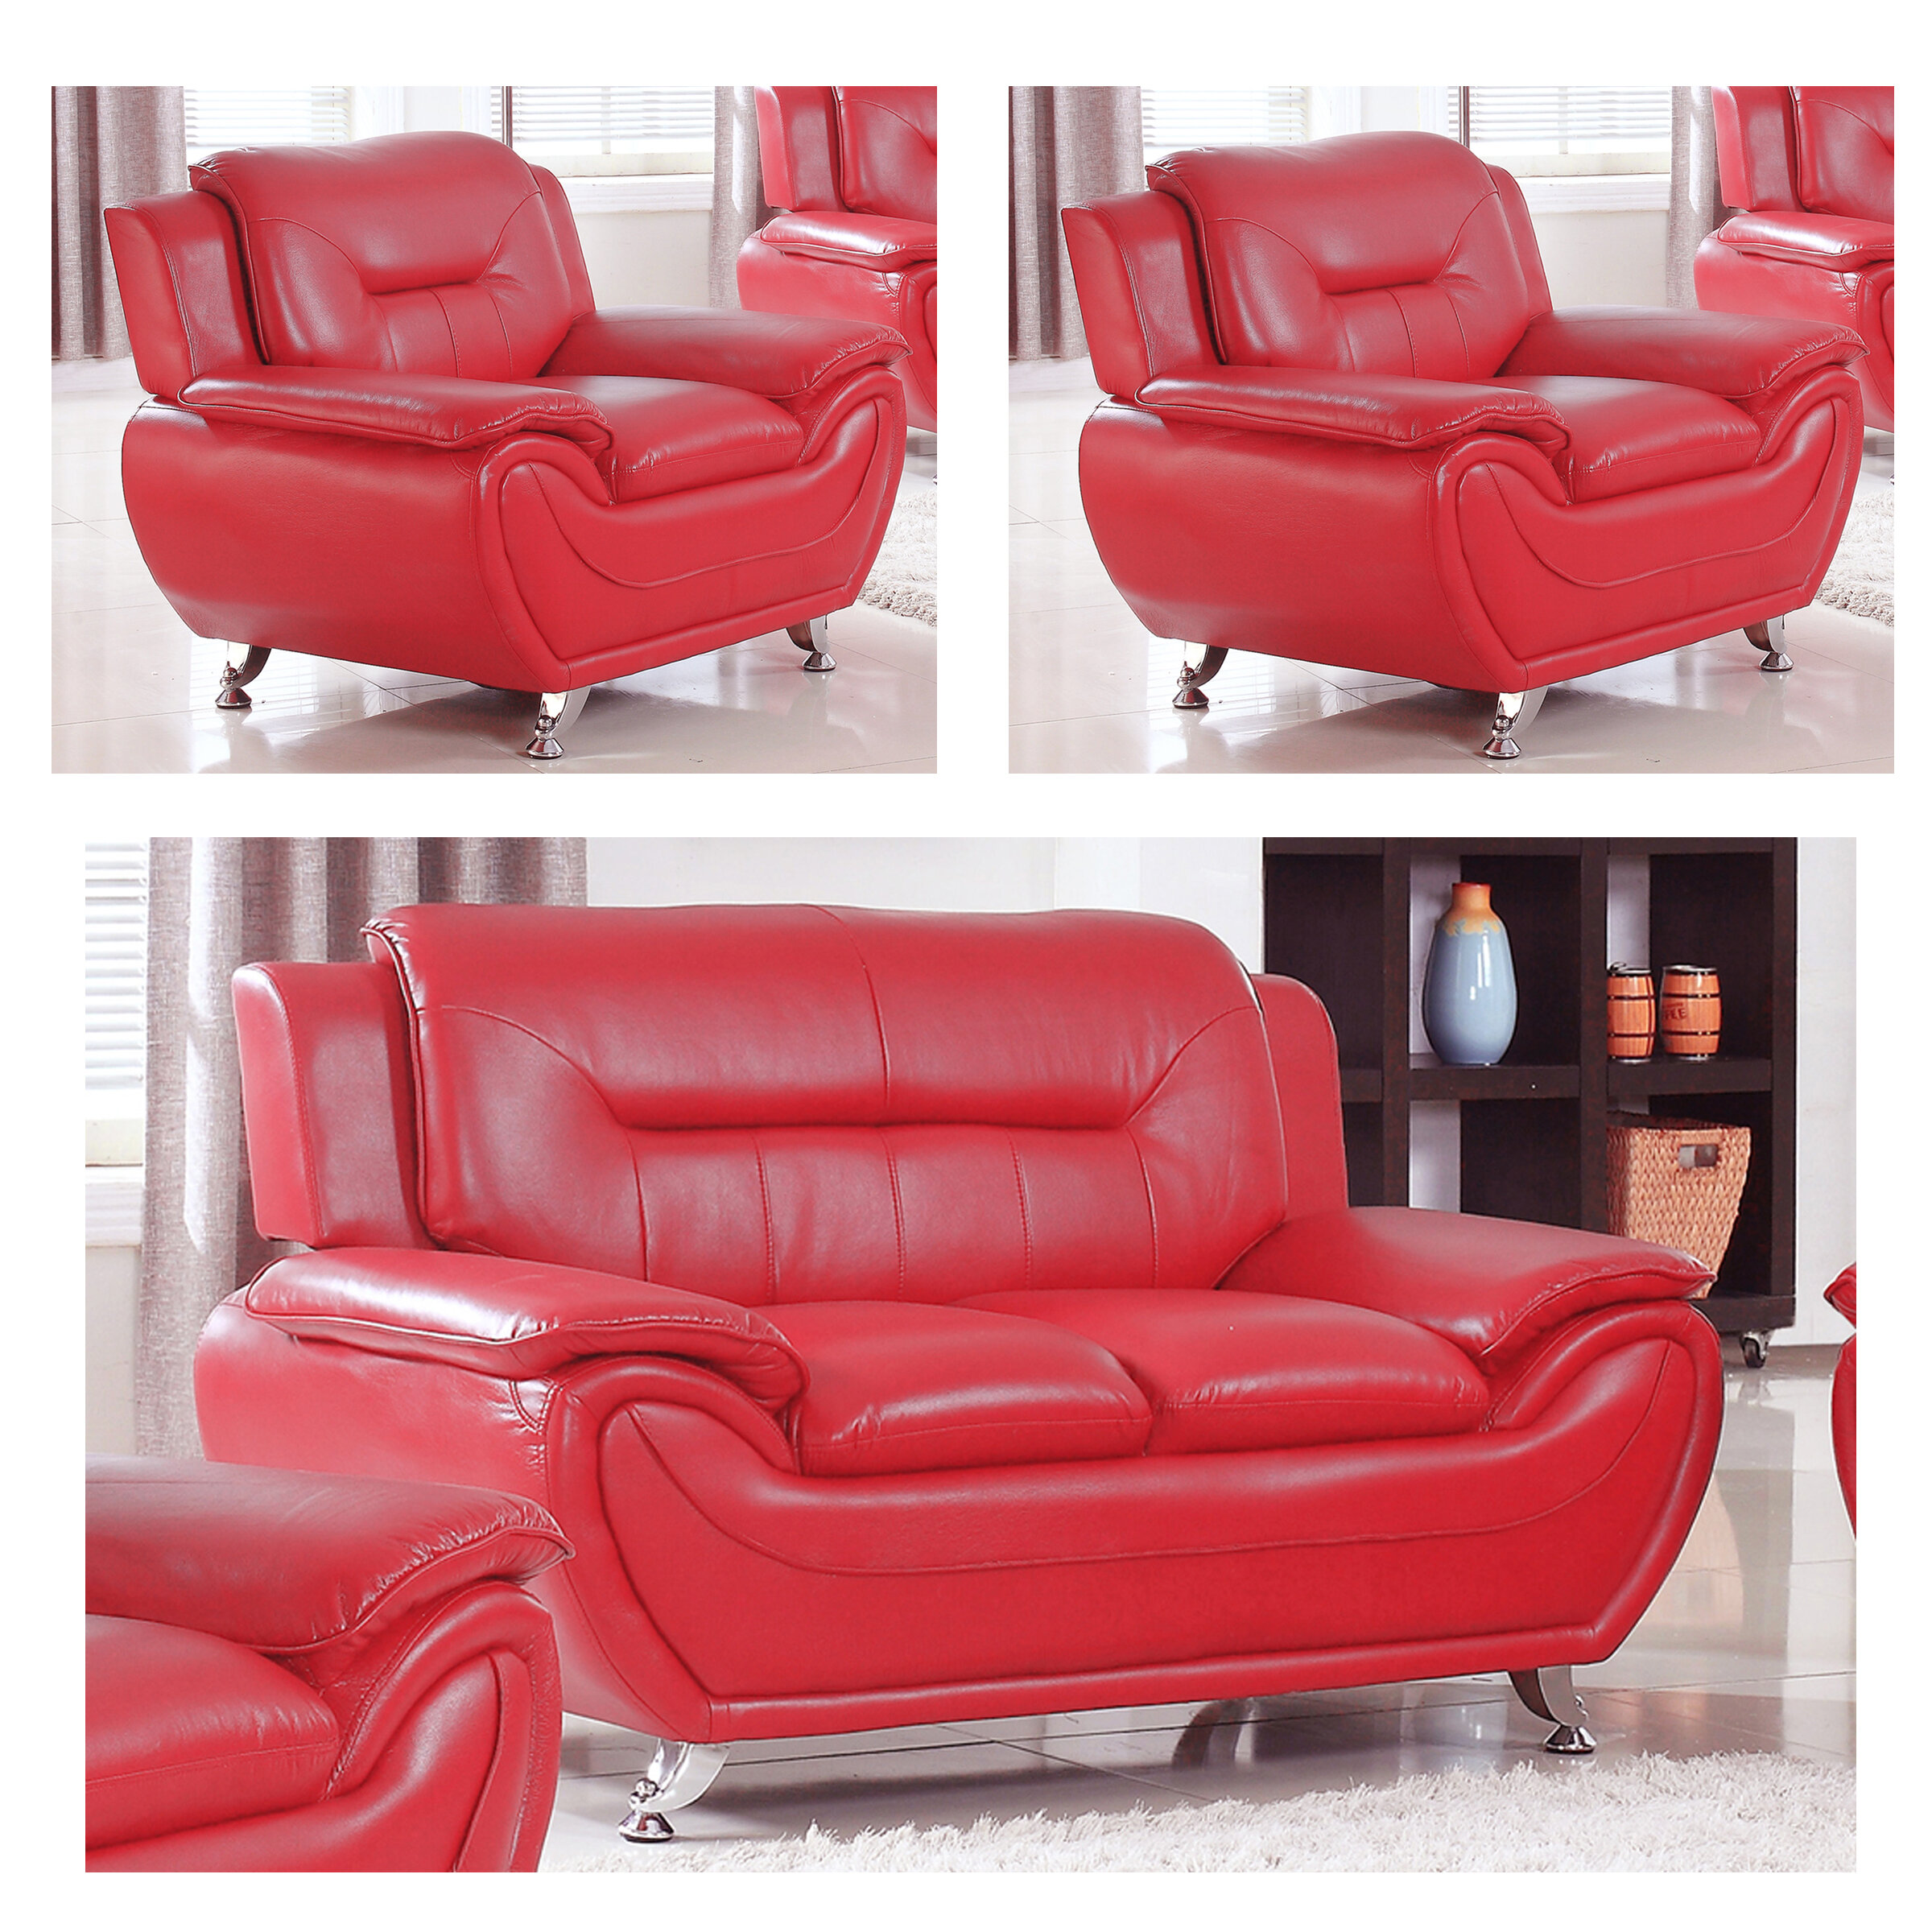 room ideas and sets awesome with red living popping marvelous chair livings bedroom furniture gallery eye